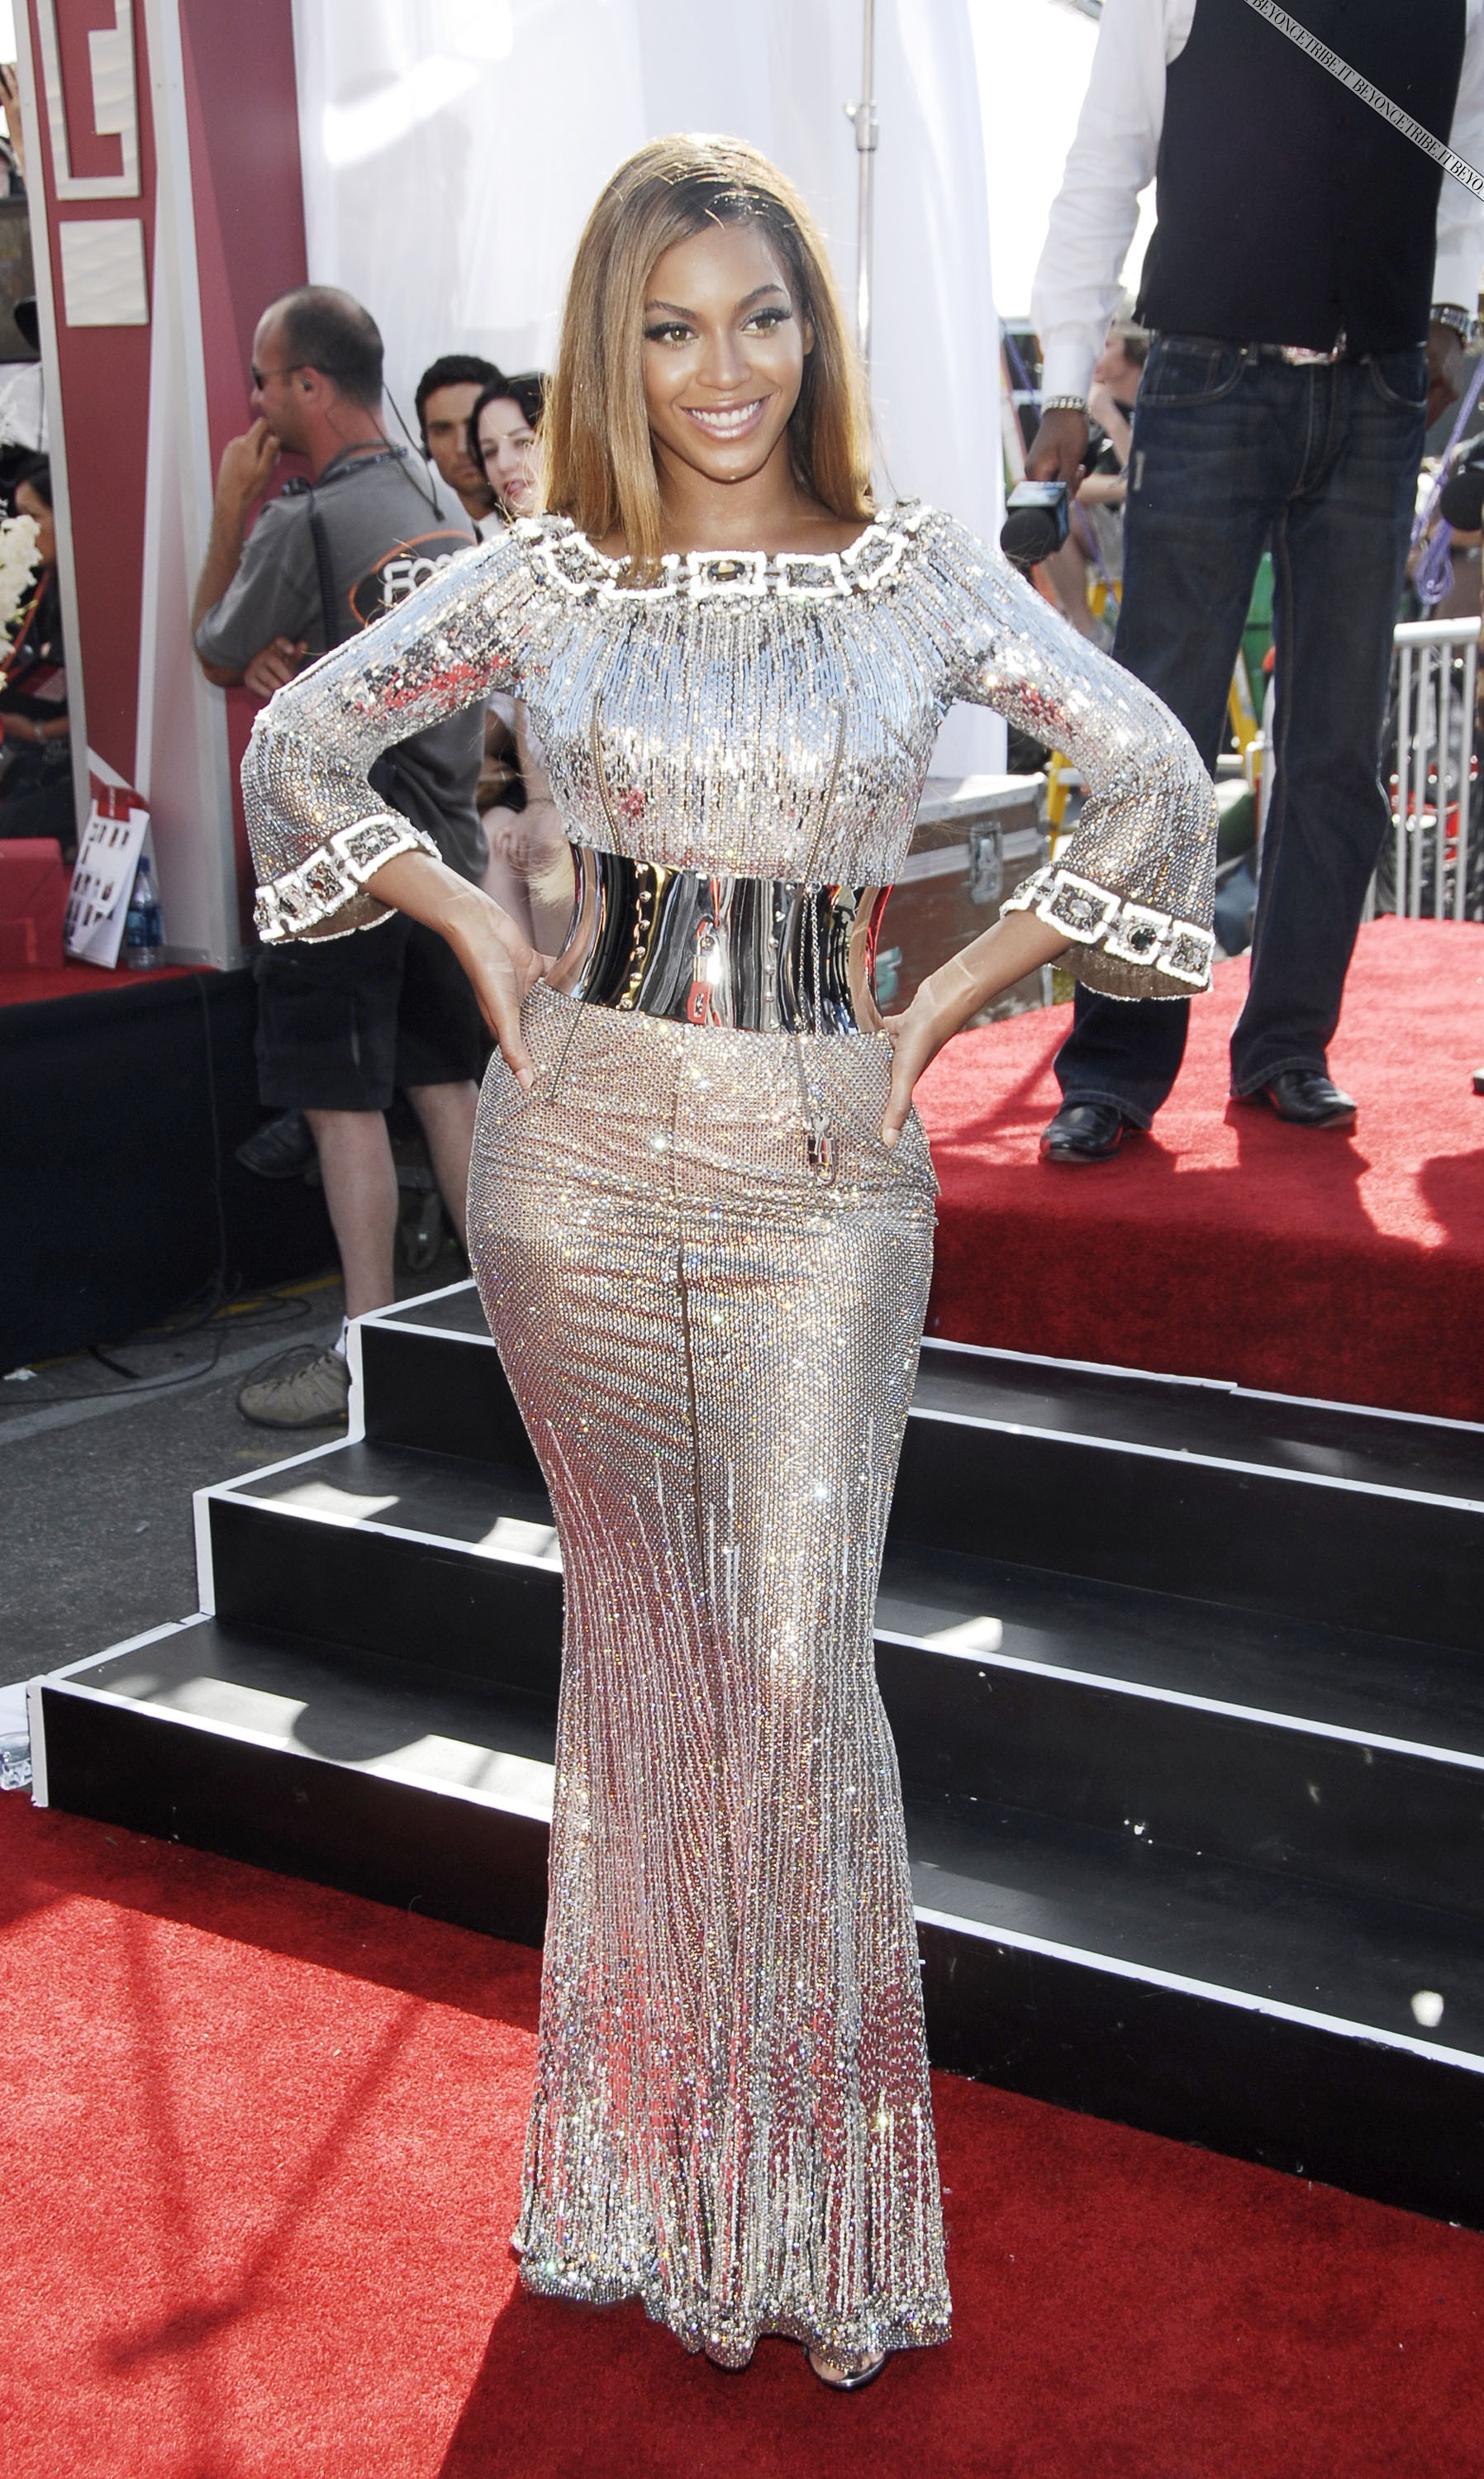 Beyoncé on BET Awards live in Los Angeles 27 Jun 2007